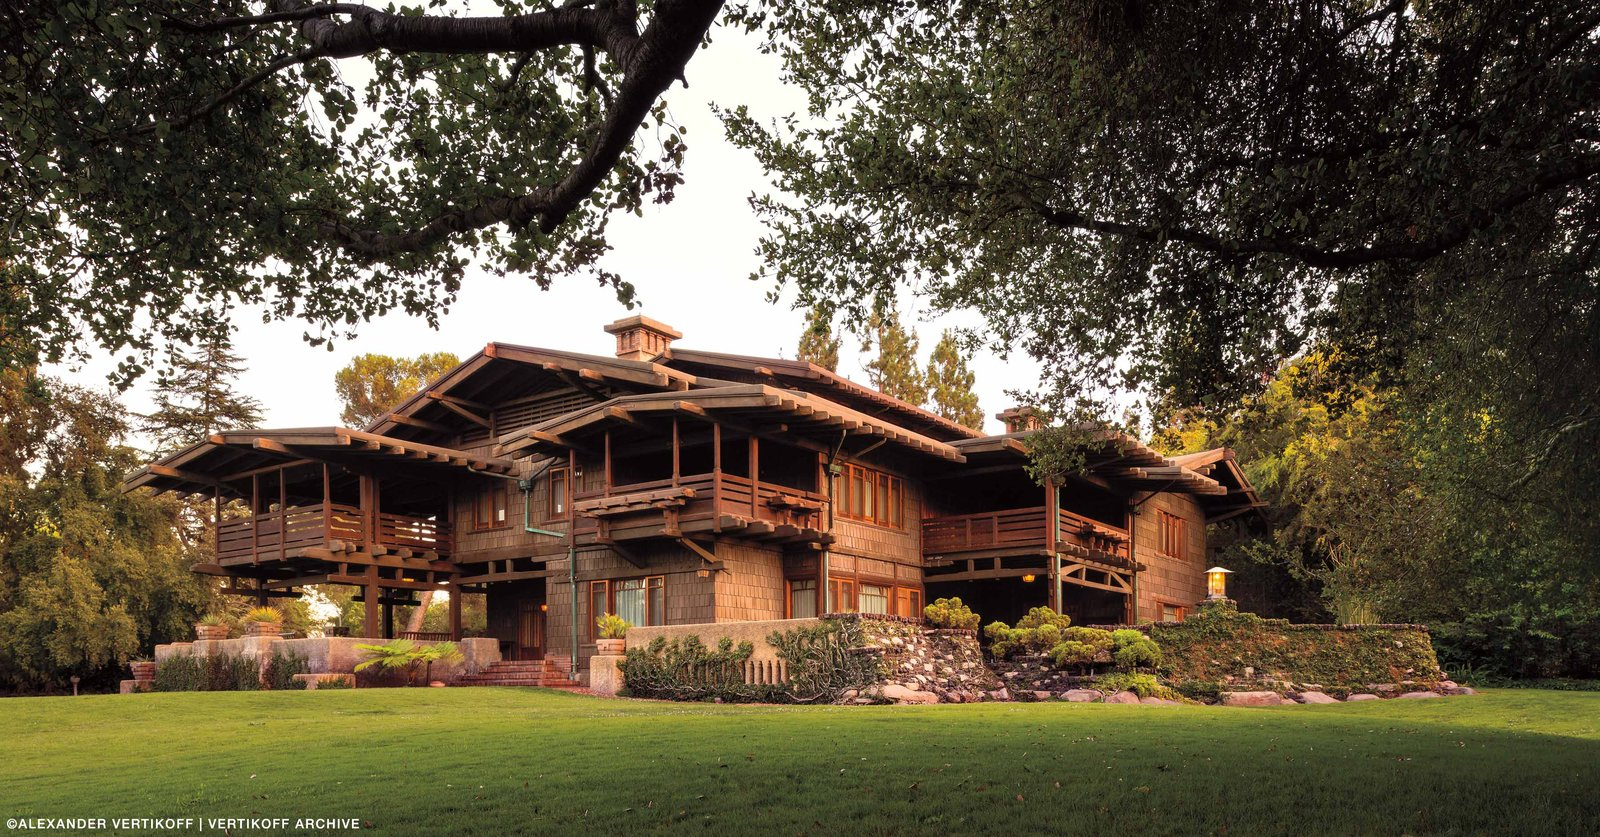 The Gamble House, which was built by the Greene Brothers for the Proctor and Gamble family in 1908, is known as one of the most authentic and well-preserved examples of the Arts and Crafts movement that spread like a wildfire in the Los Angeles neighborhood of Pasadena. Every detail of the the house was crafted by hand with an abundance of natural materials. Photo by Alexander Vertikoff, Courtesy of the Gamble HouseUltimate bungalows